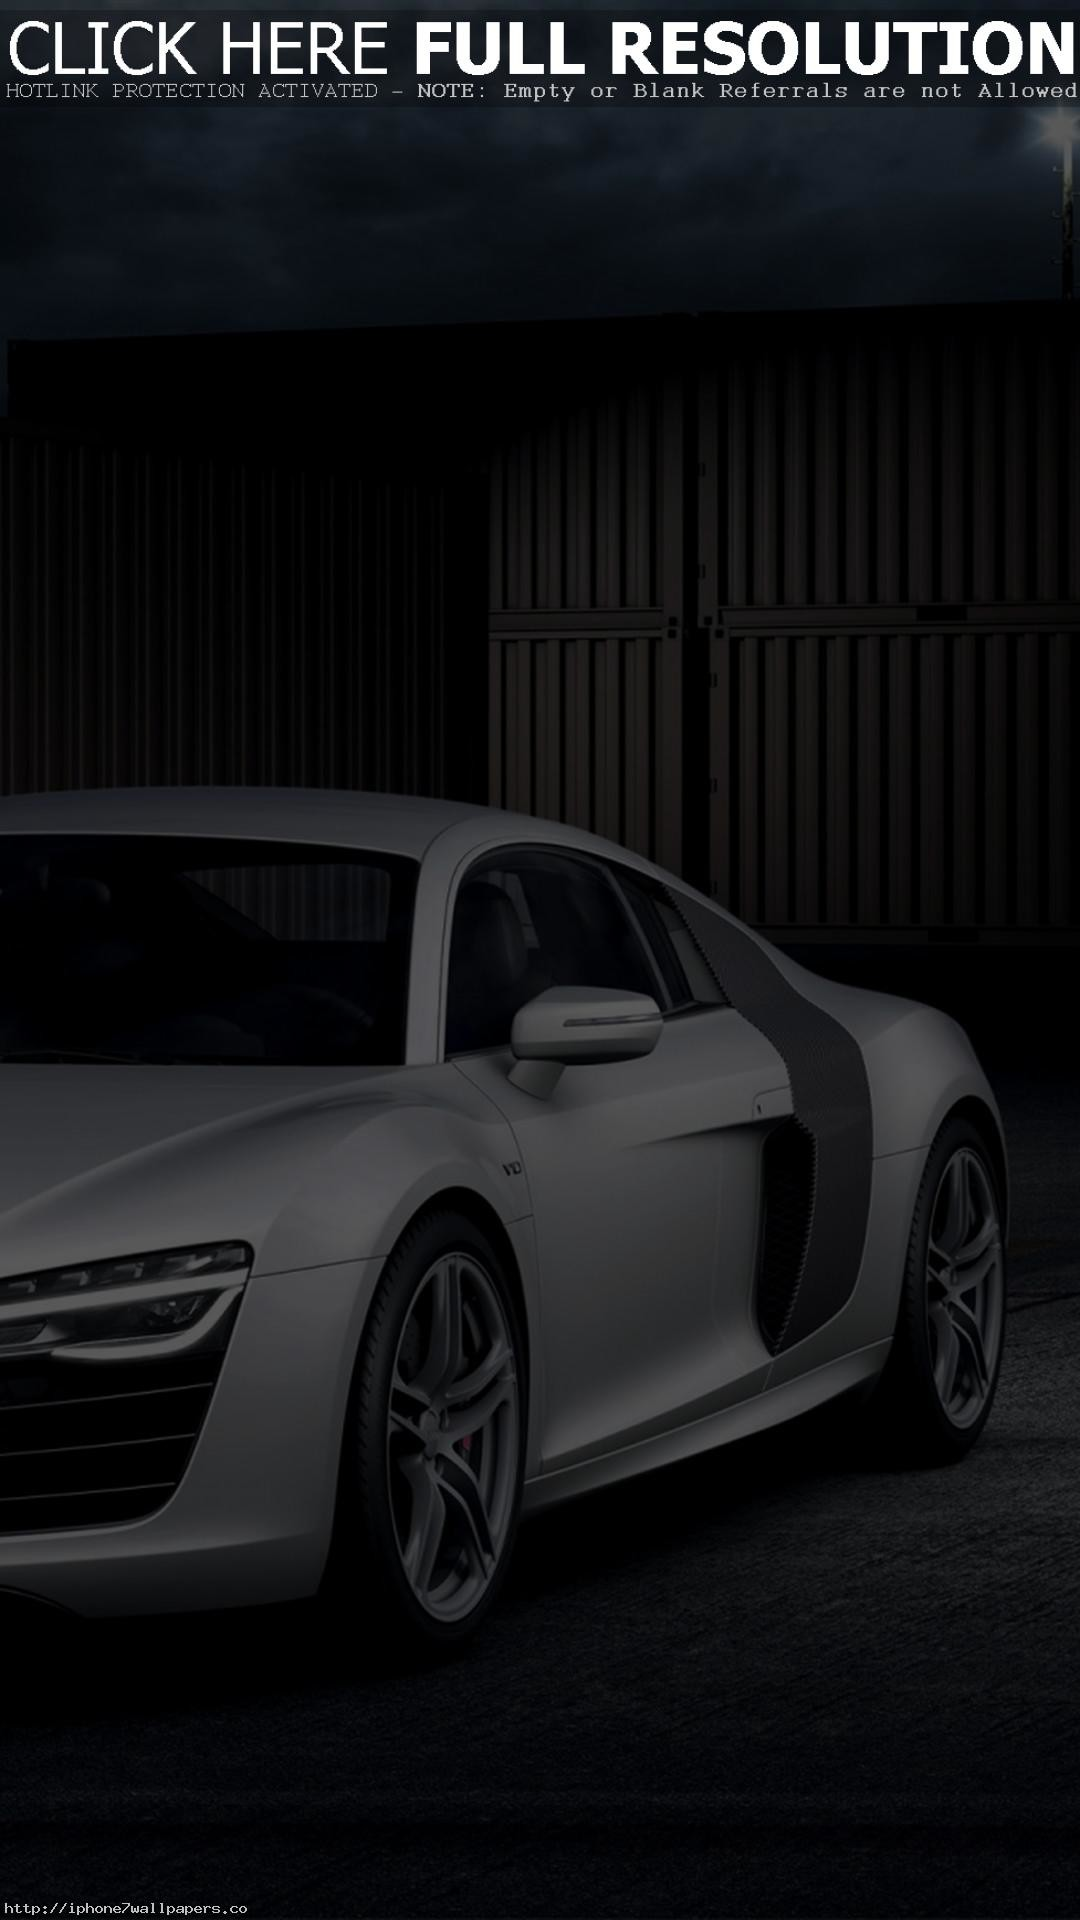 Audi R8 Wallpaper Hd 79 Images